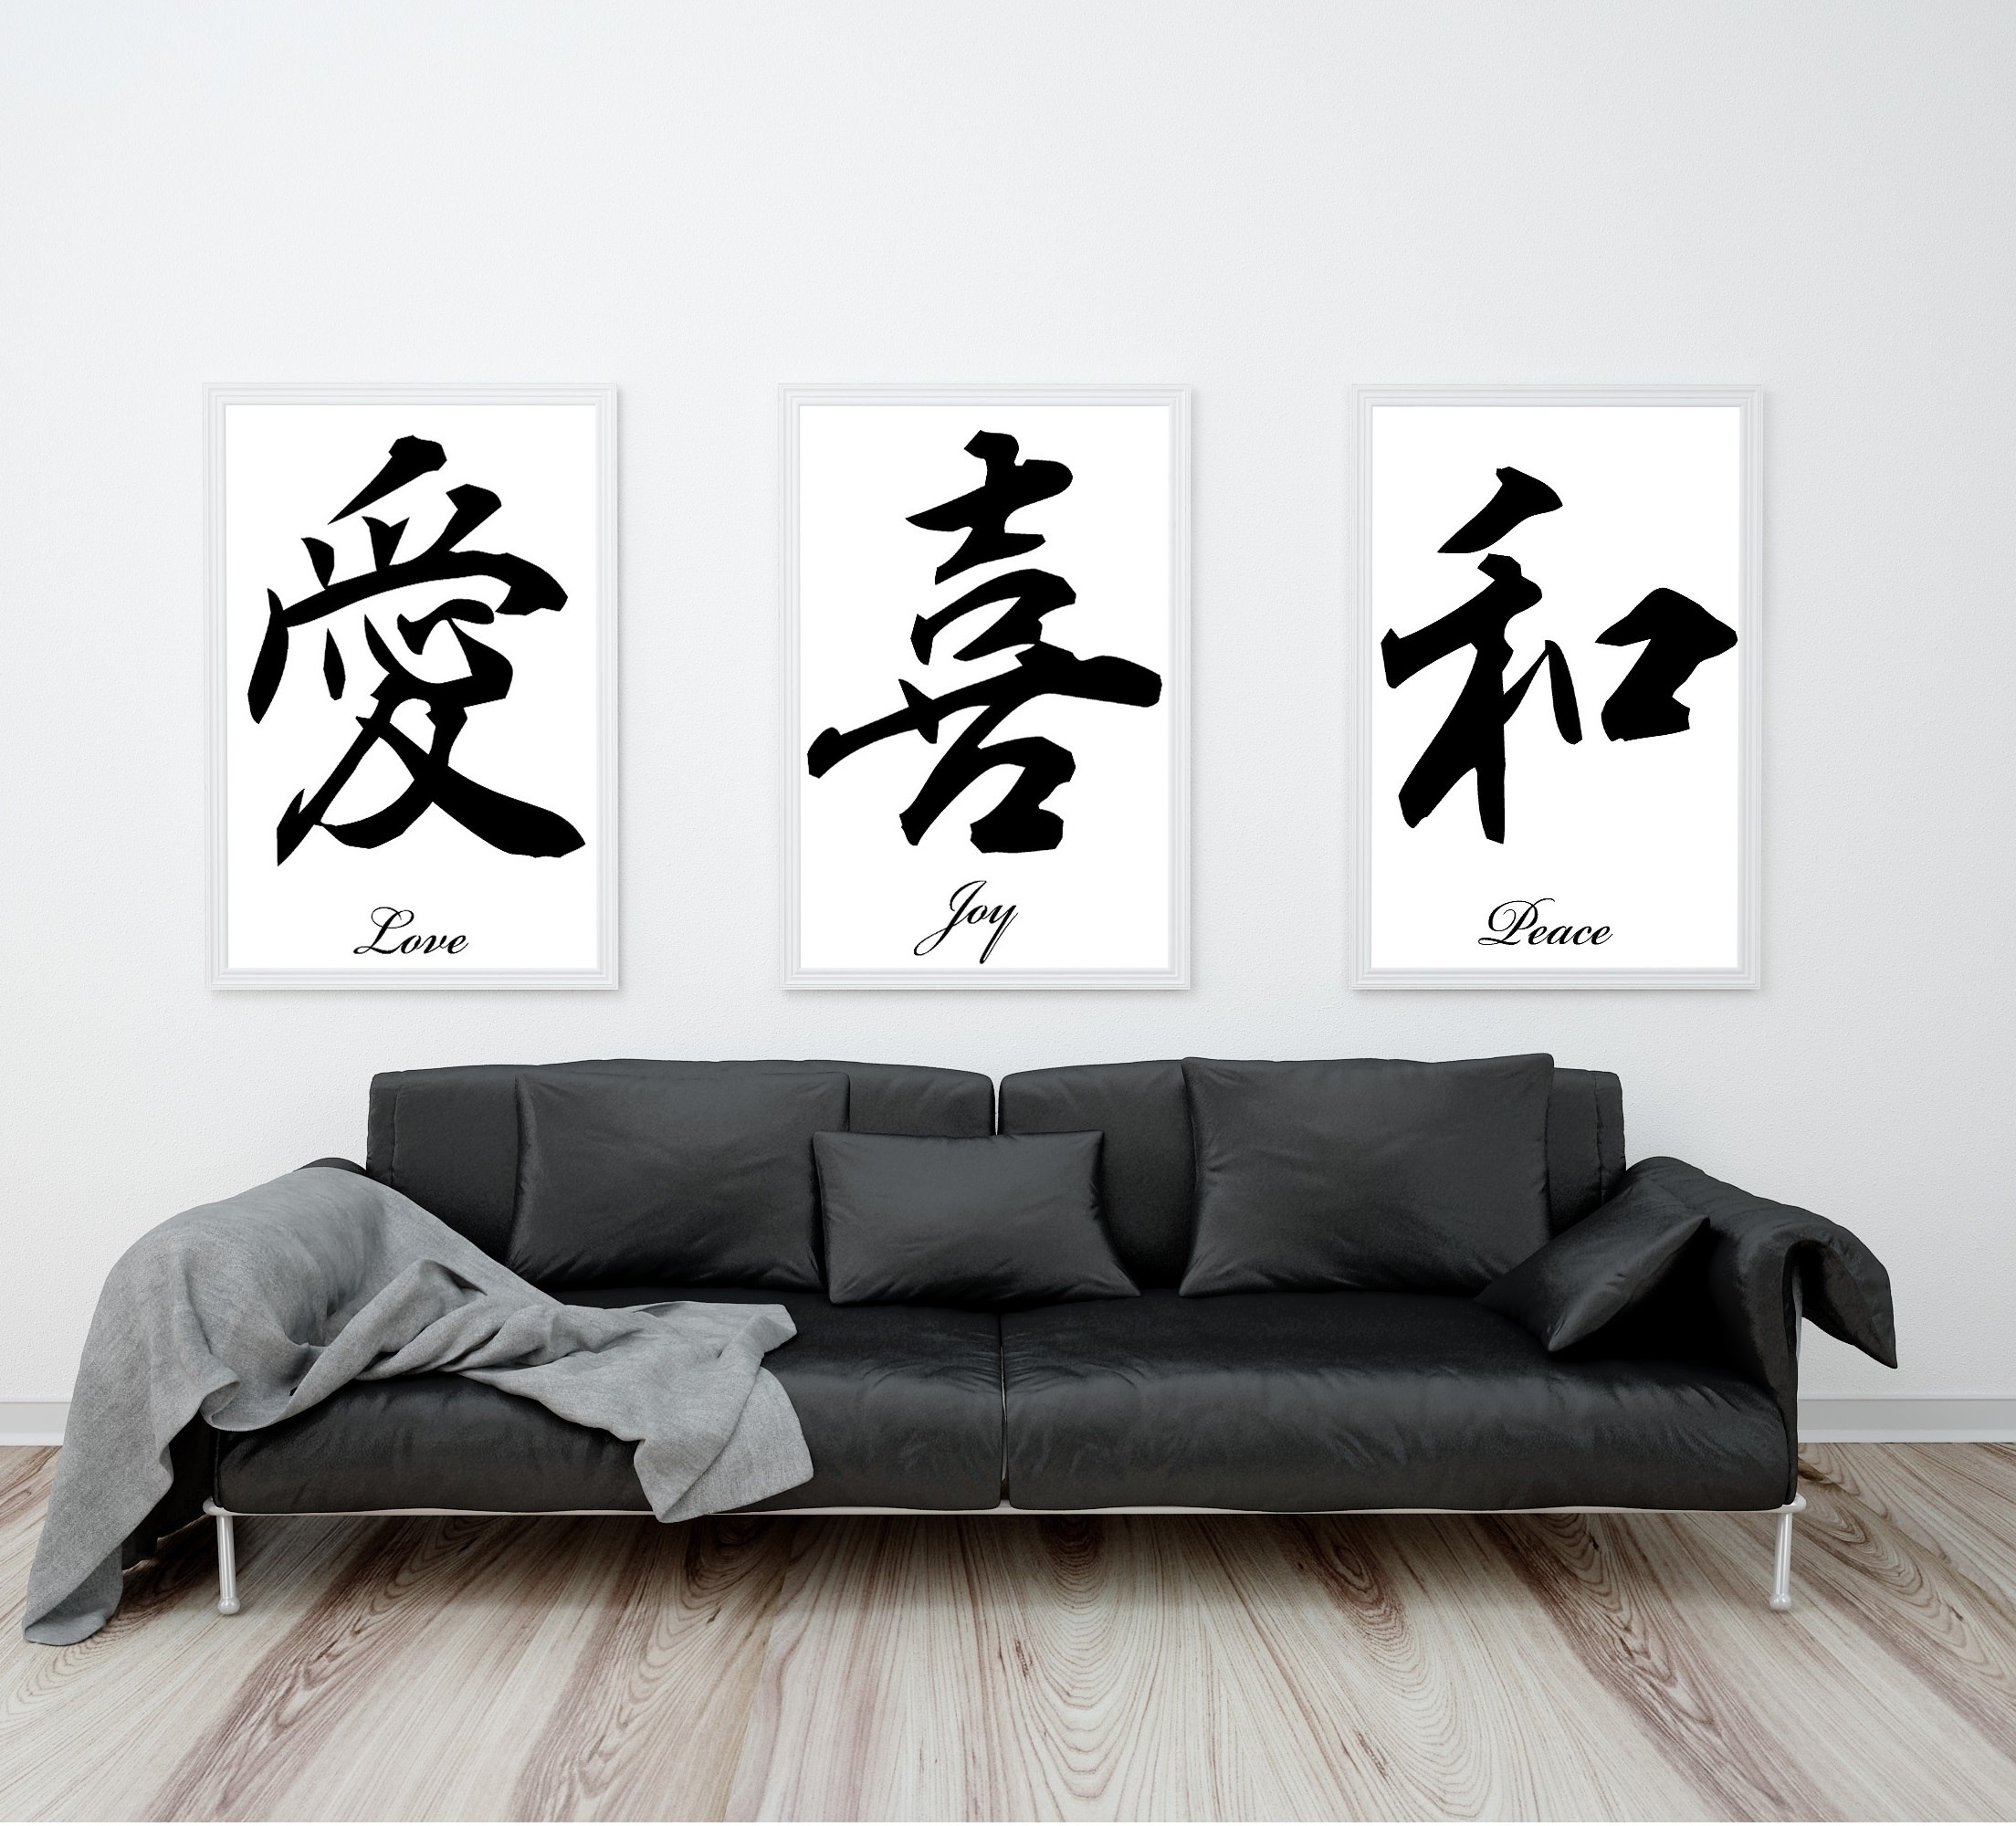 Japanese Wall Decor | Fresh4Home Within Recent Japanese Wall Art (Gallery 7 of 20)